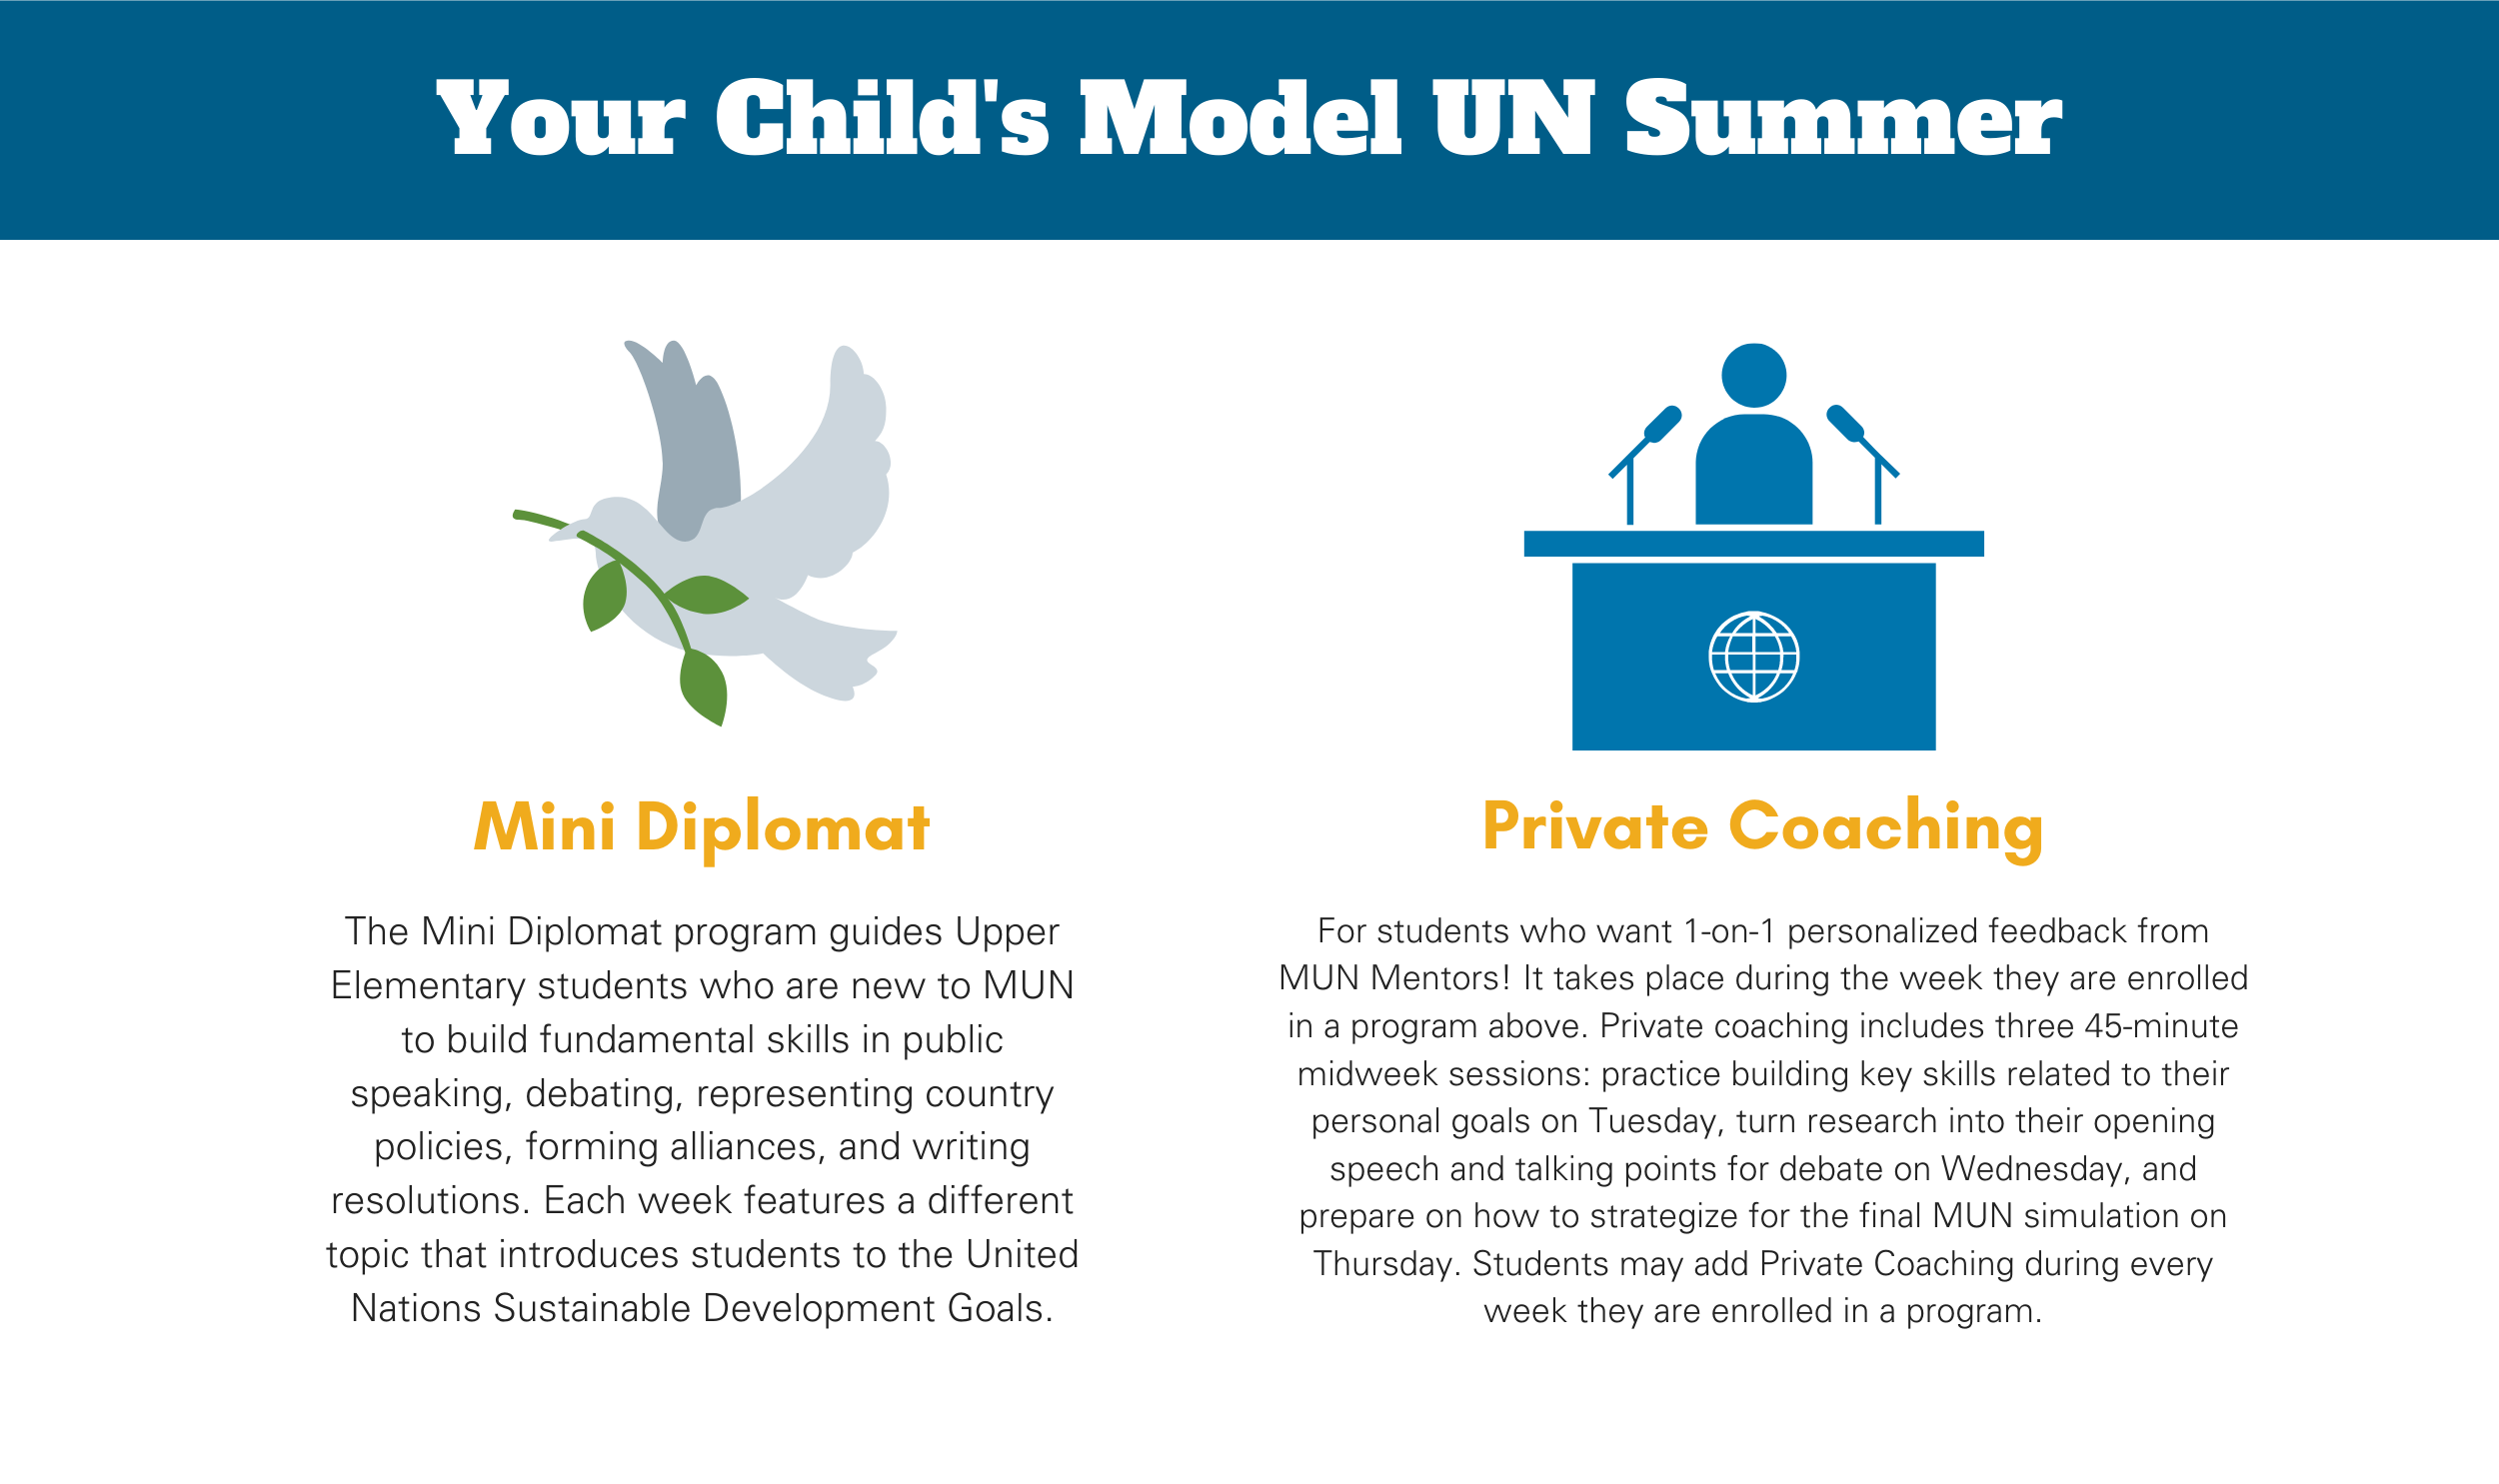 Best Delegate Model United Nations Elementary School Programs